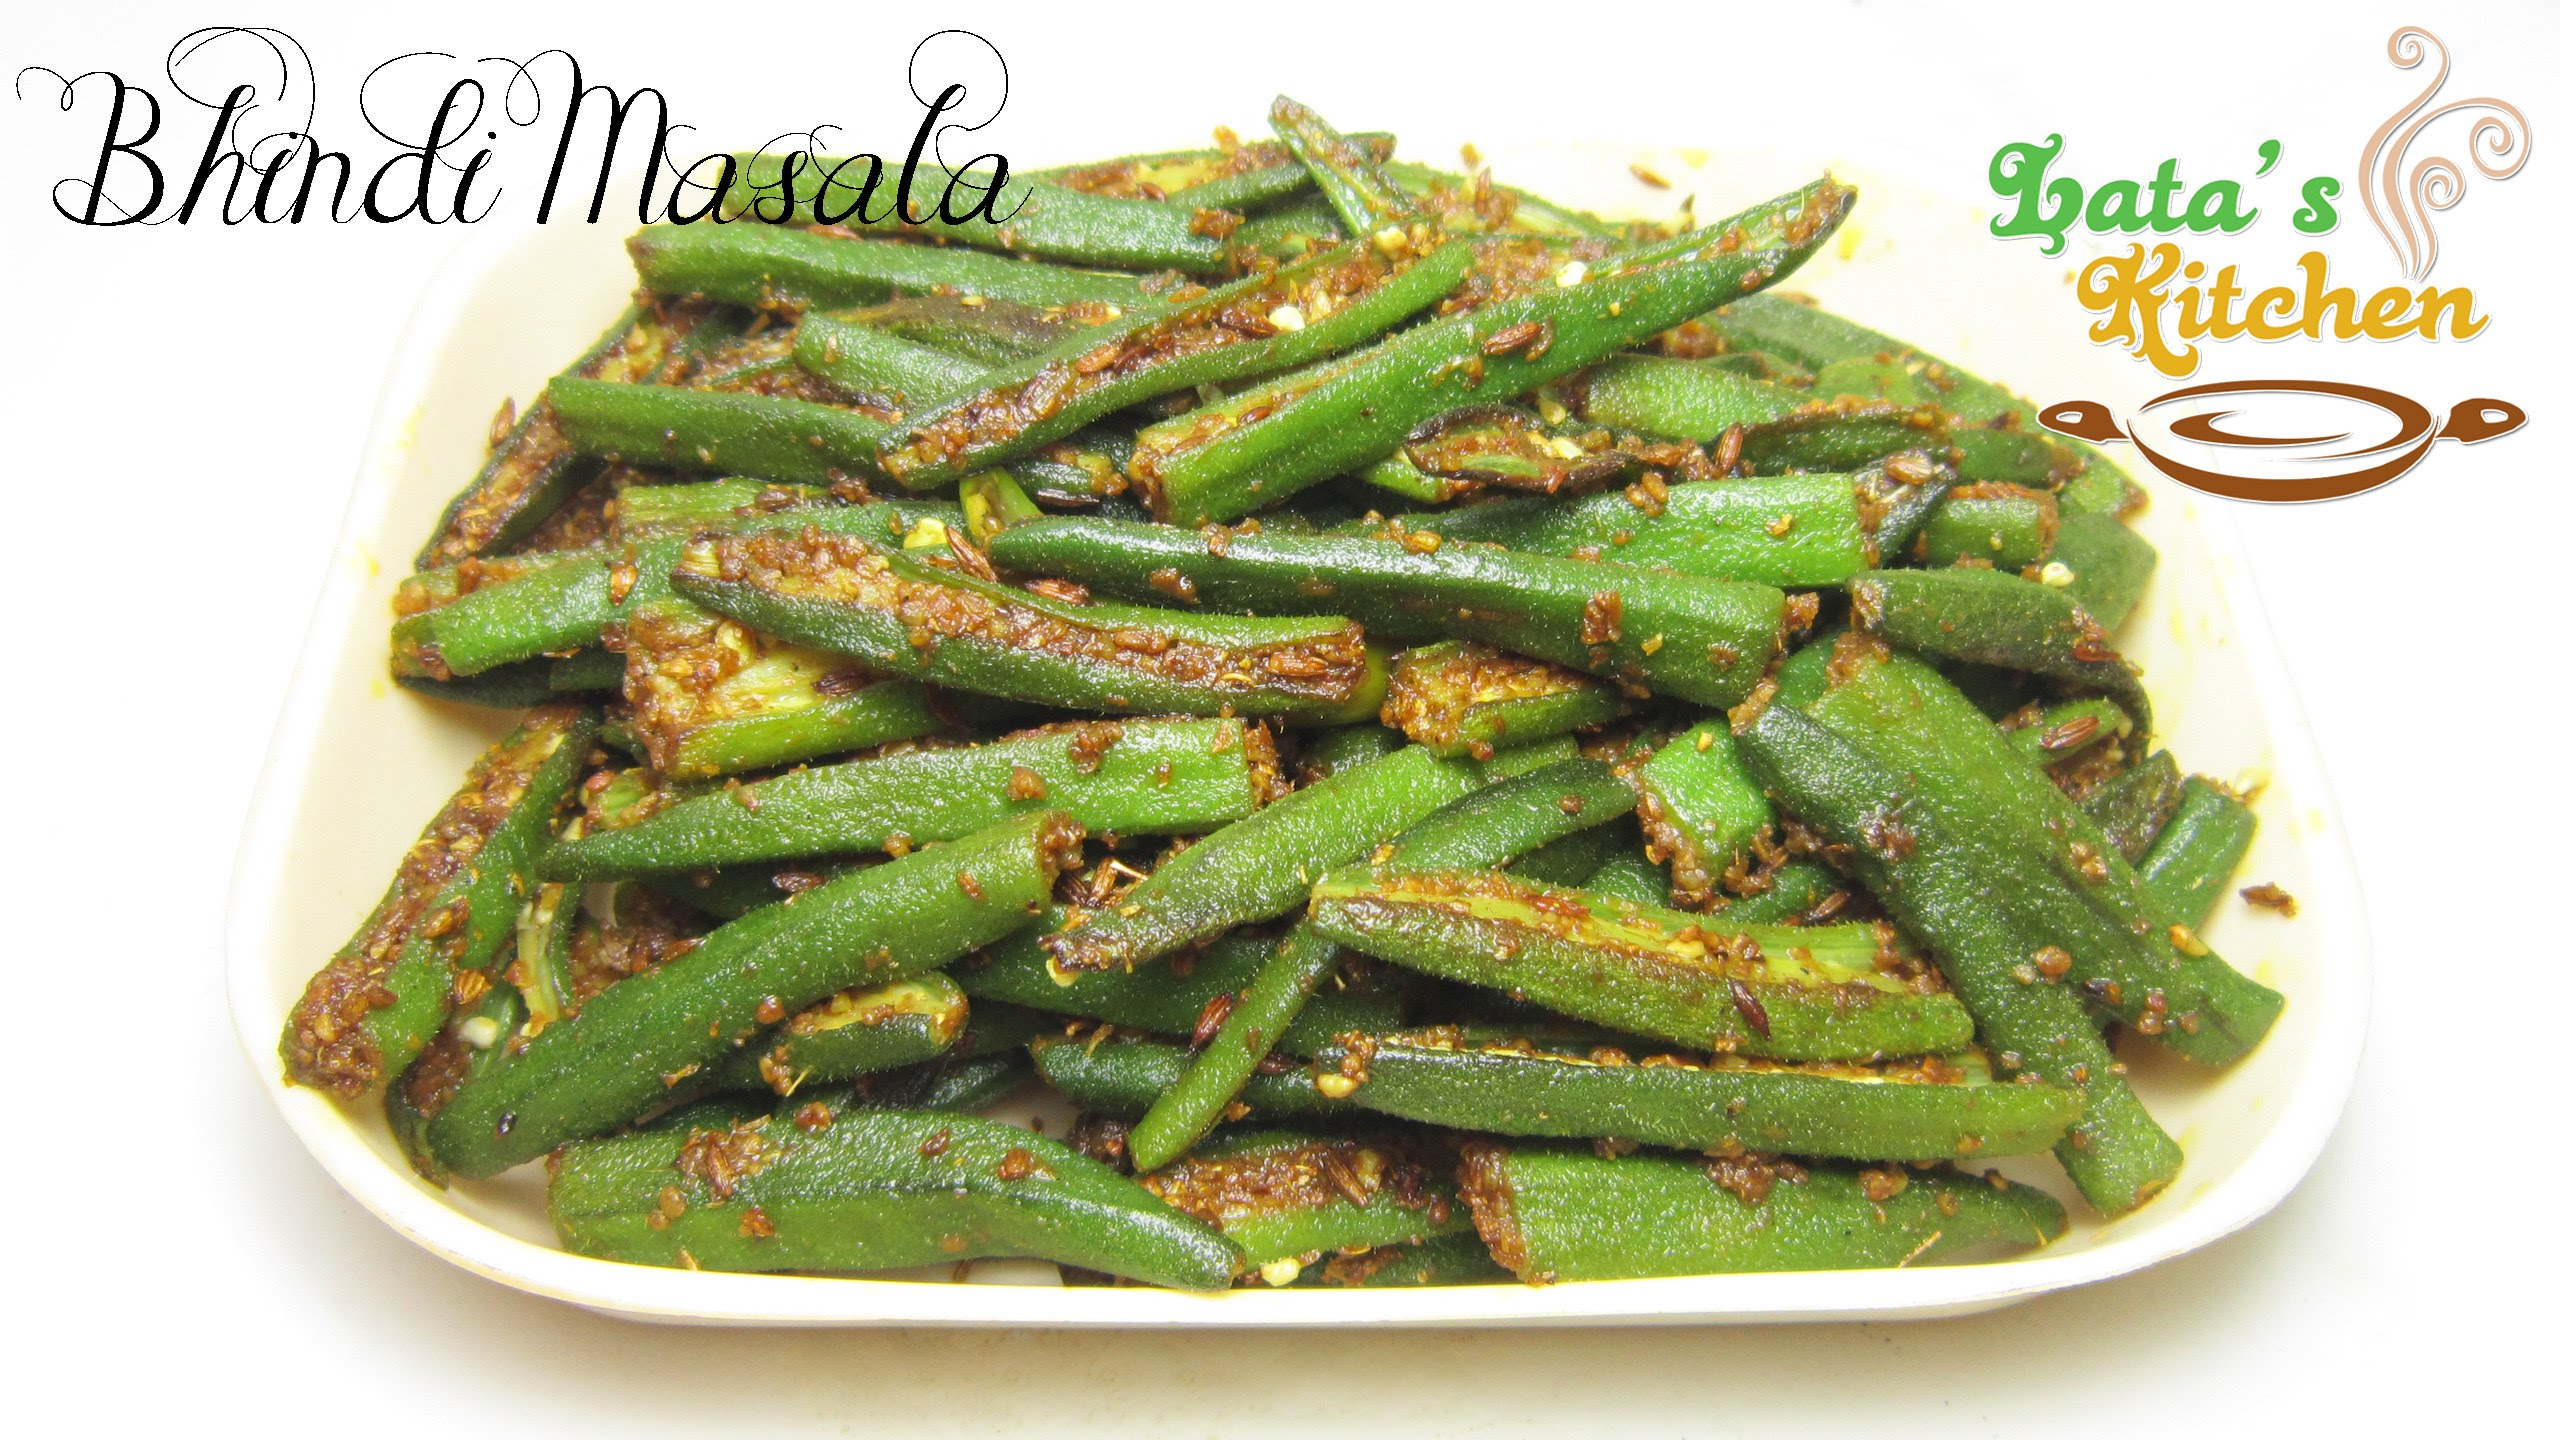 Bhindi masala recipe okra masala indian vegetarian recipe in bhindi masala recipe okra masala indian vegetarian recipe in hindi with english subtitles video perfectlifestylefo news for a perfect life forumfinder Images